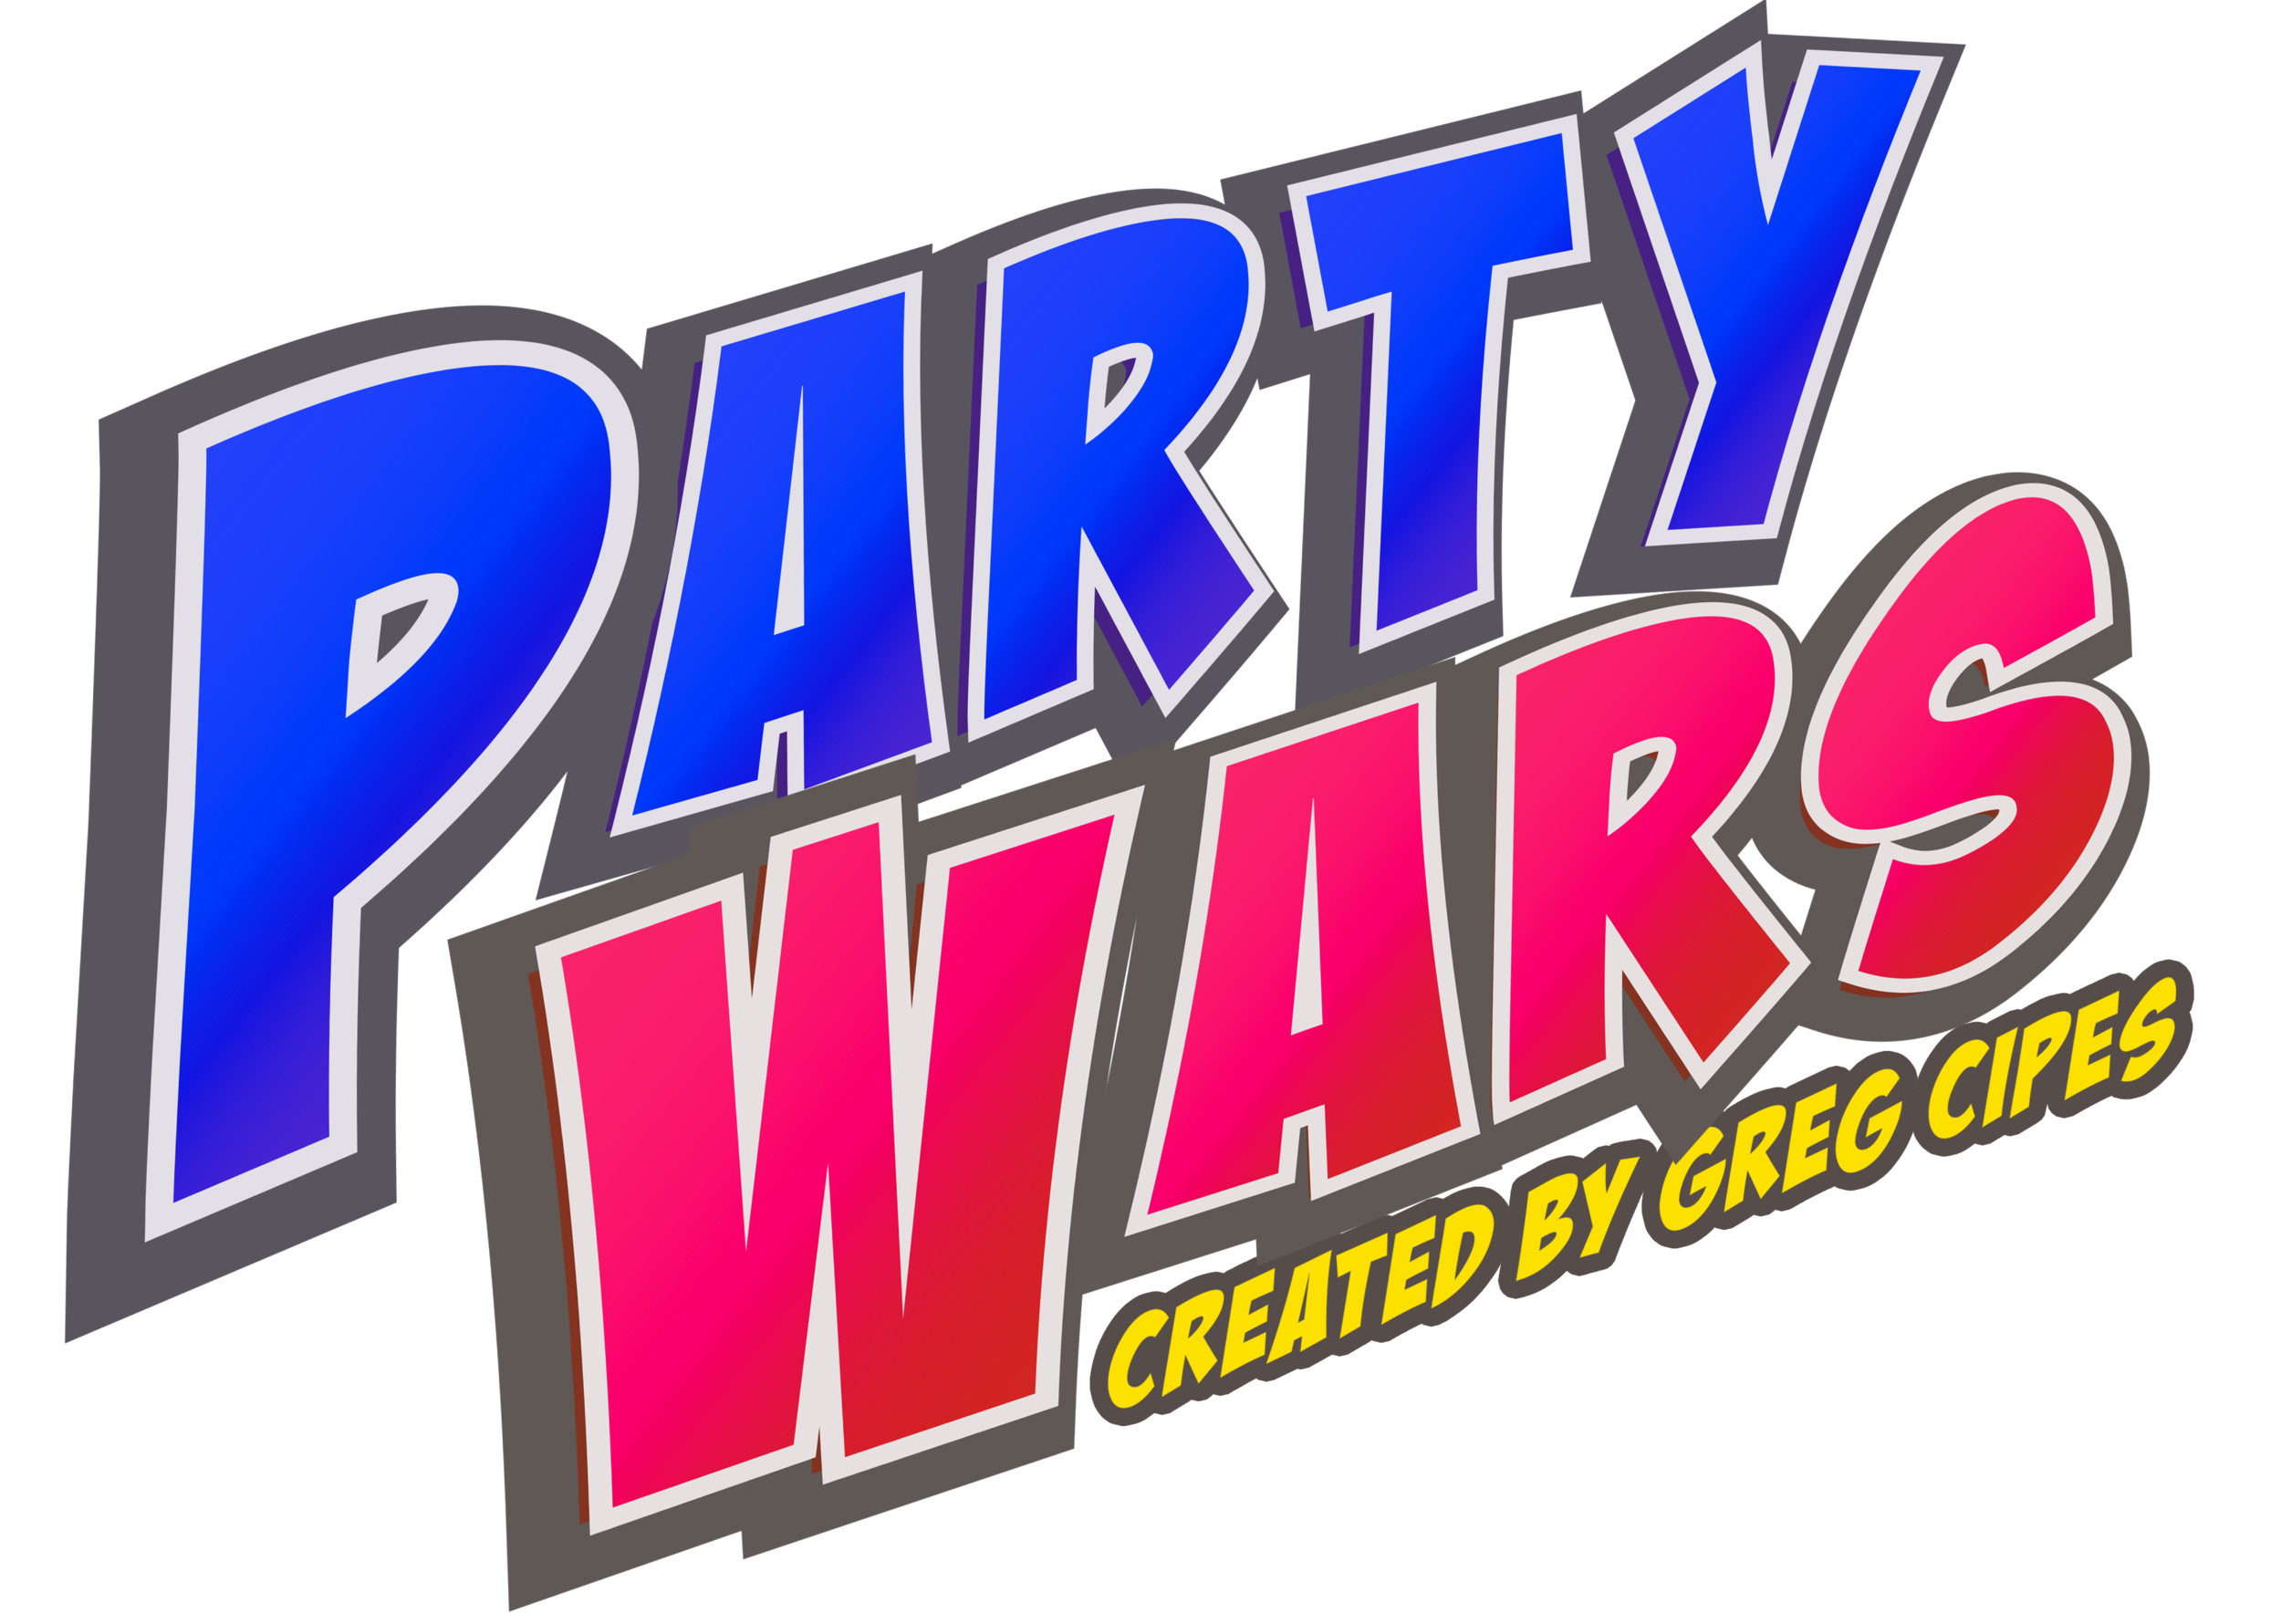 Party-Wars-logos-FULL.png